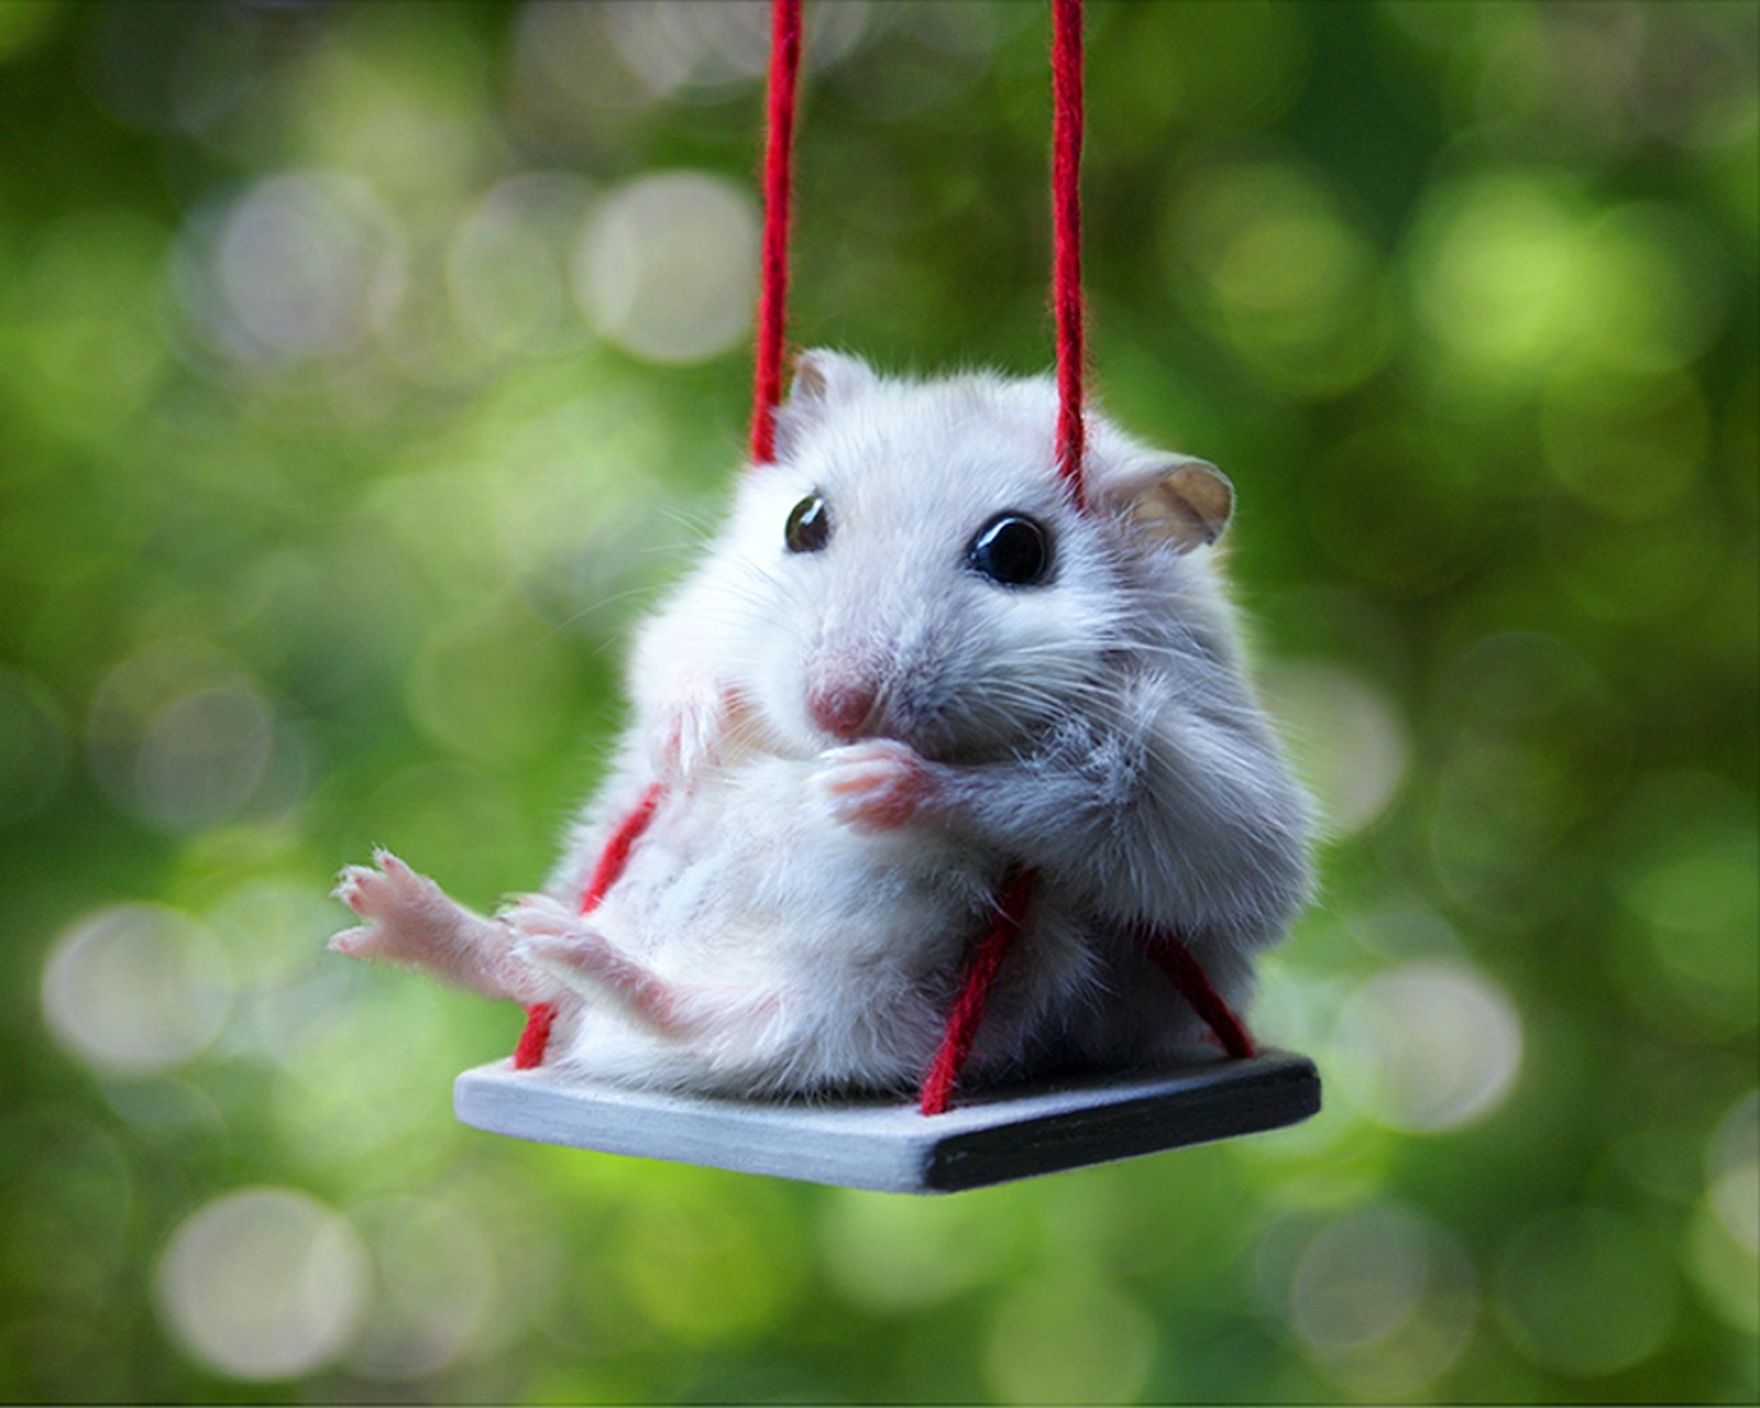 Download free HD Cute White Hamster Computer Wallpaper, image